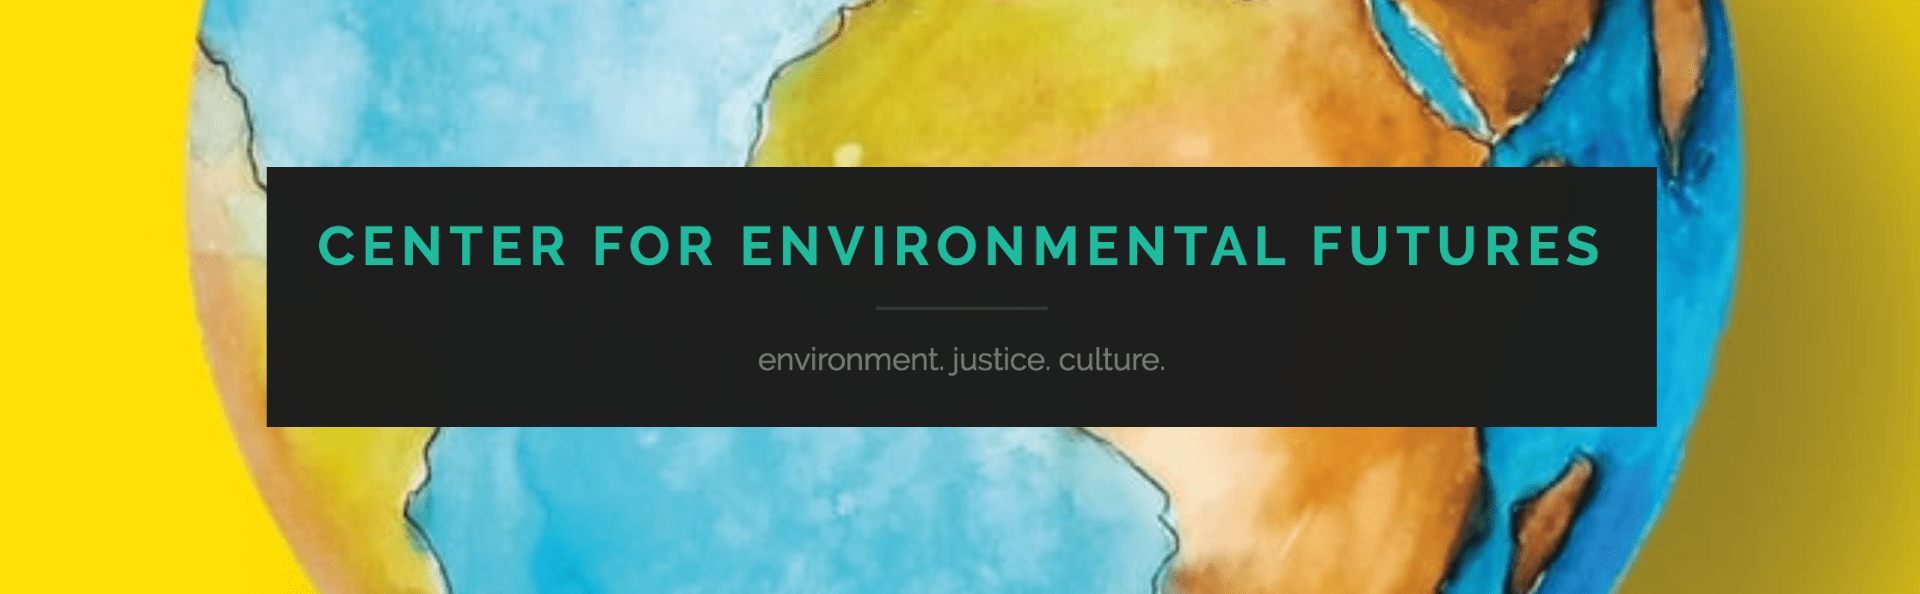 Center for Environmental Futures logo